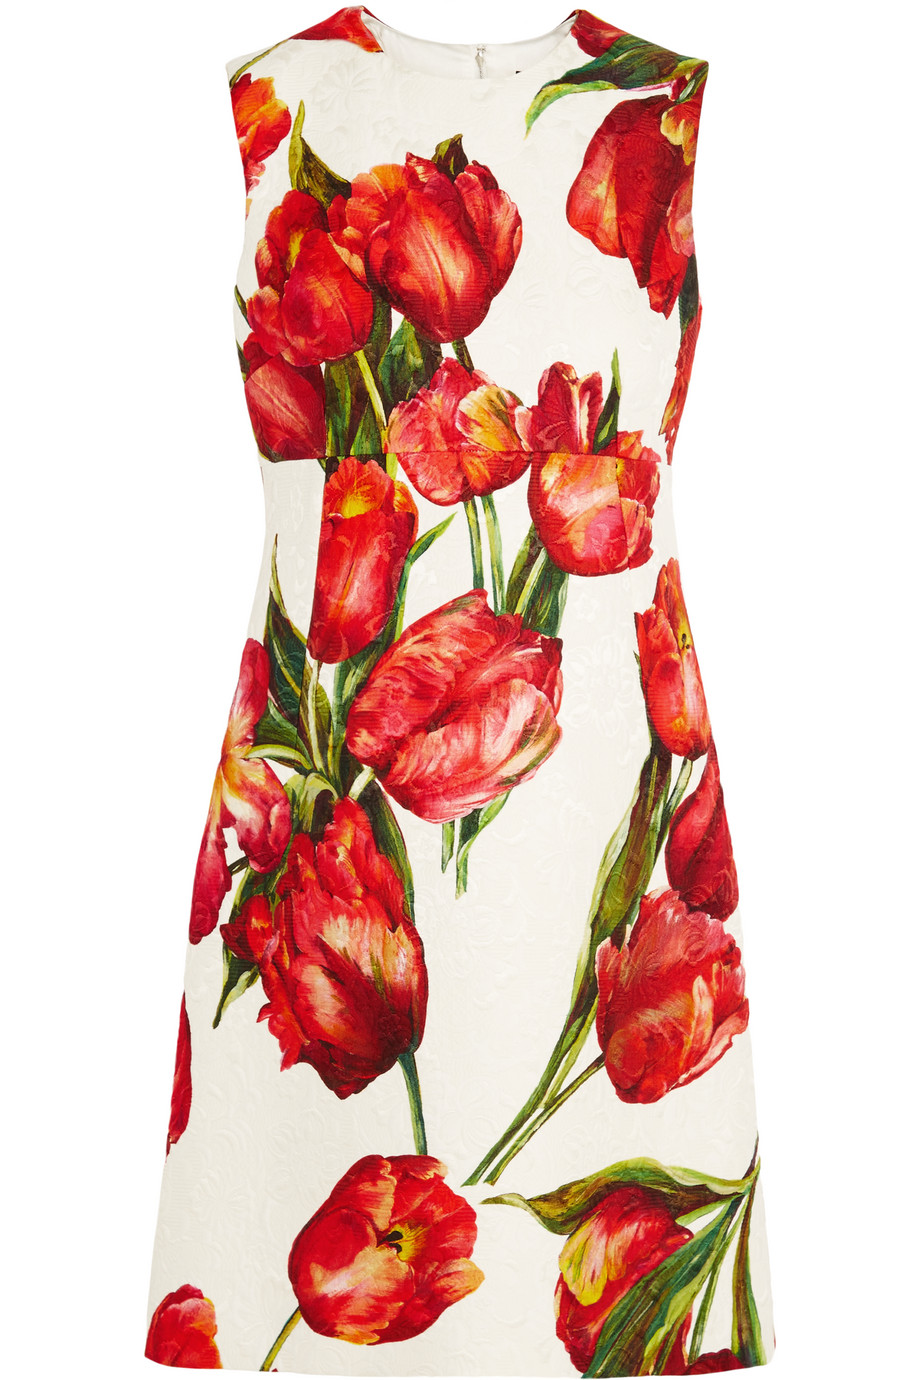 Dolce & Gabbana Floral-Print Cotton-Blend Matelassé Mini Dress, Red, Women's - Floral, Size: 40